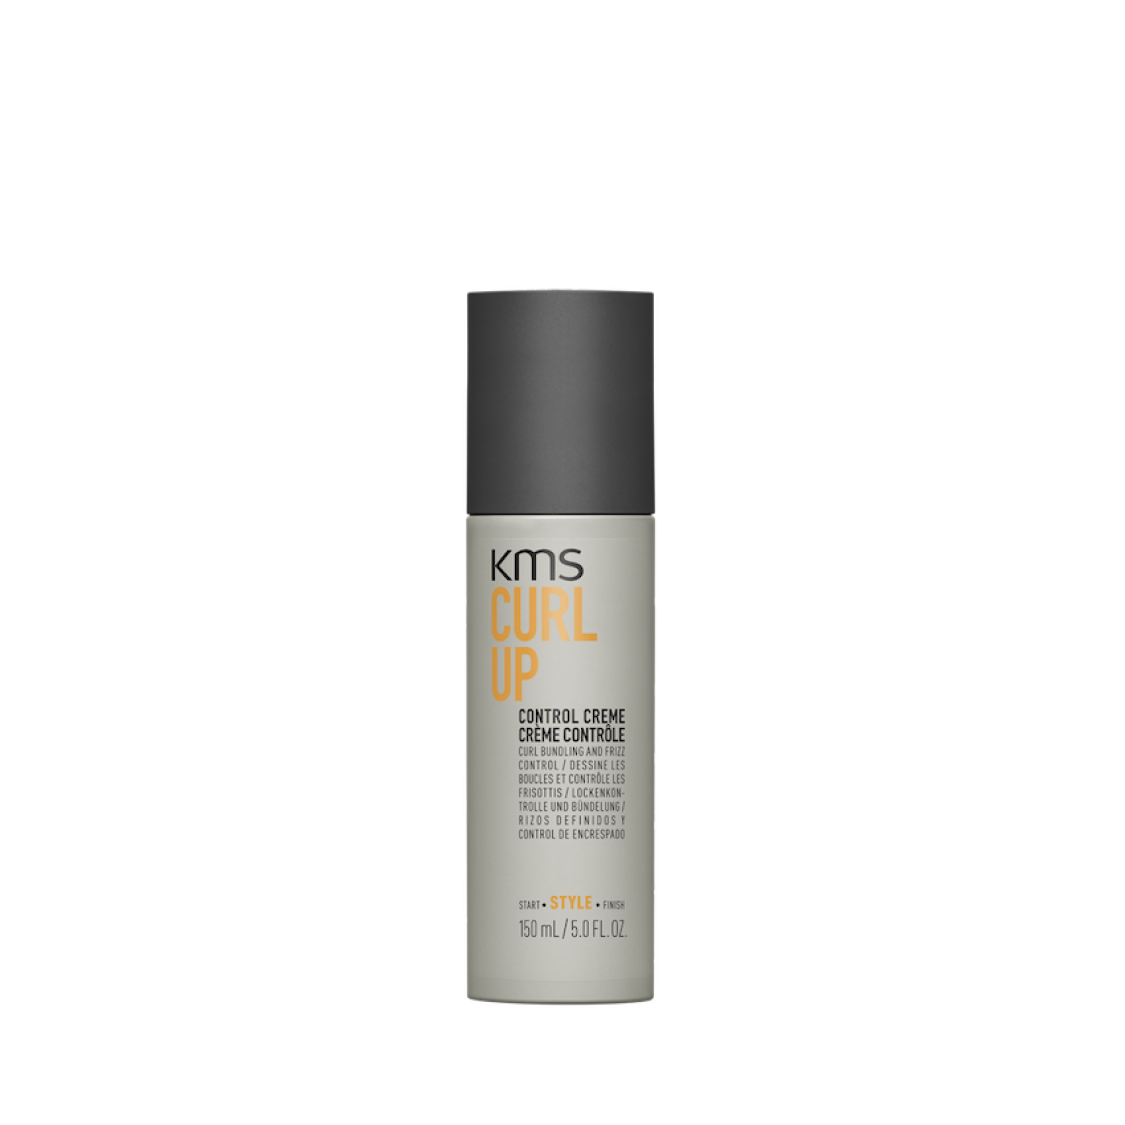 KMS - Curl Up Control Creme 150ml